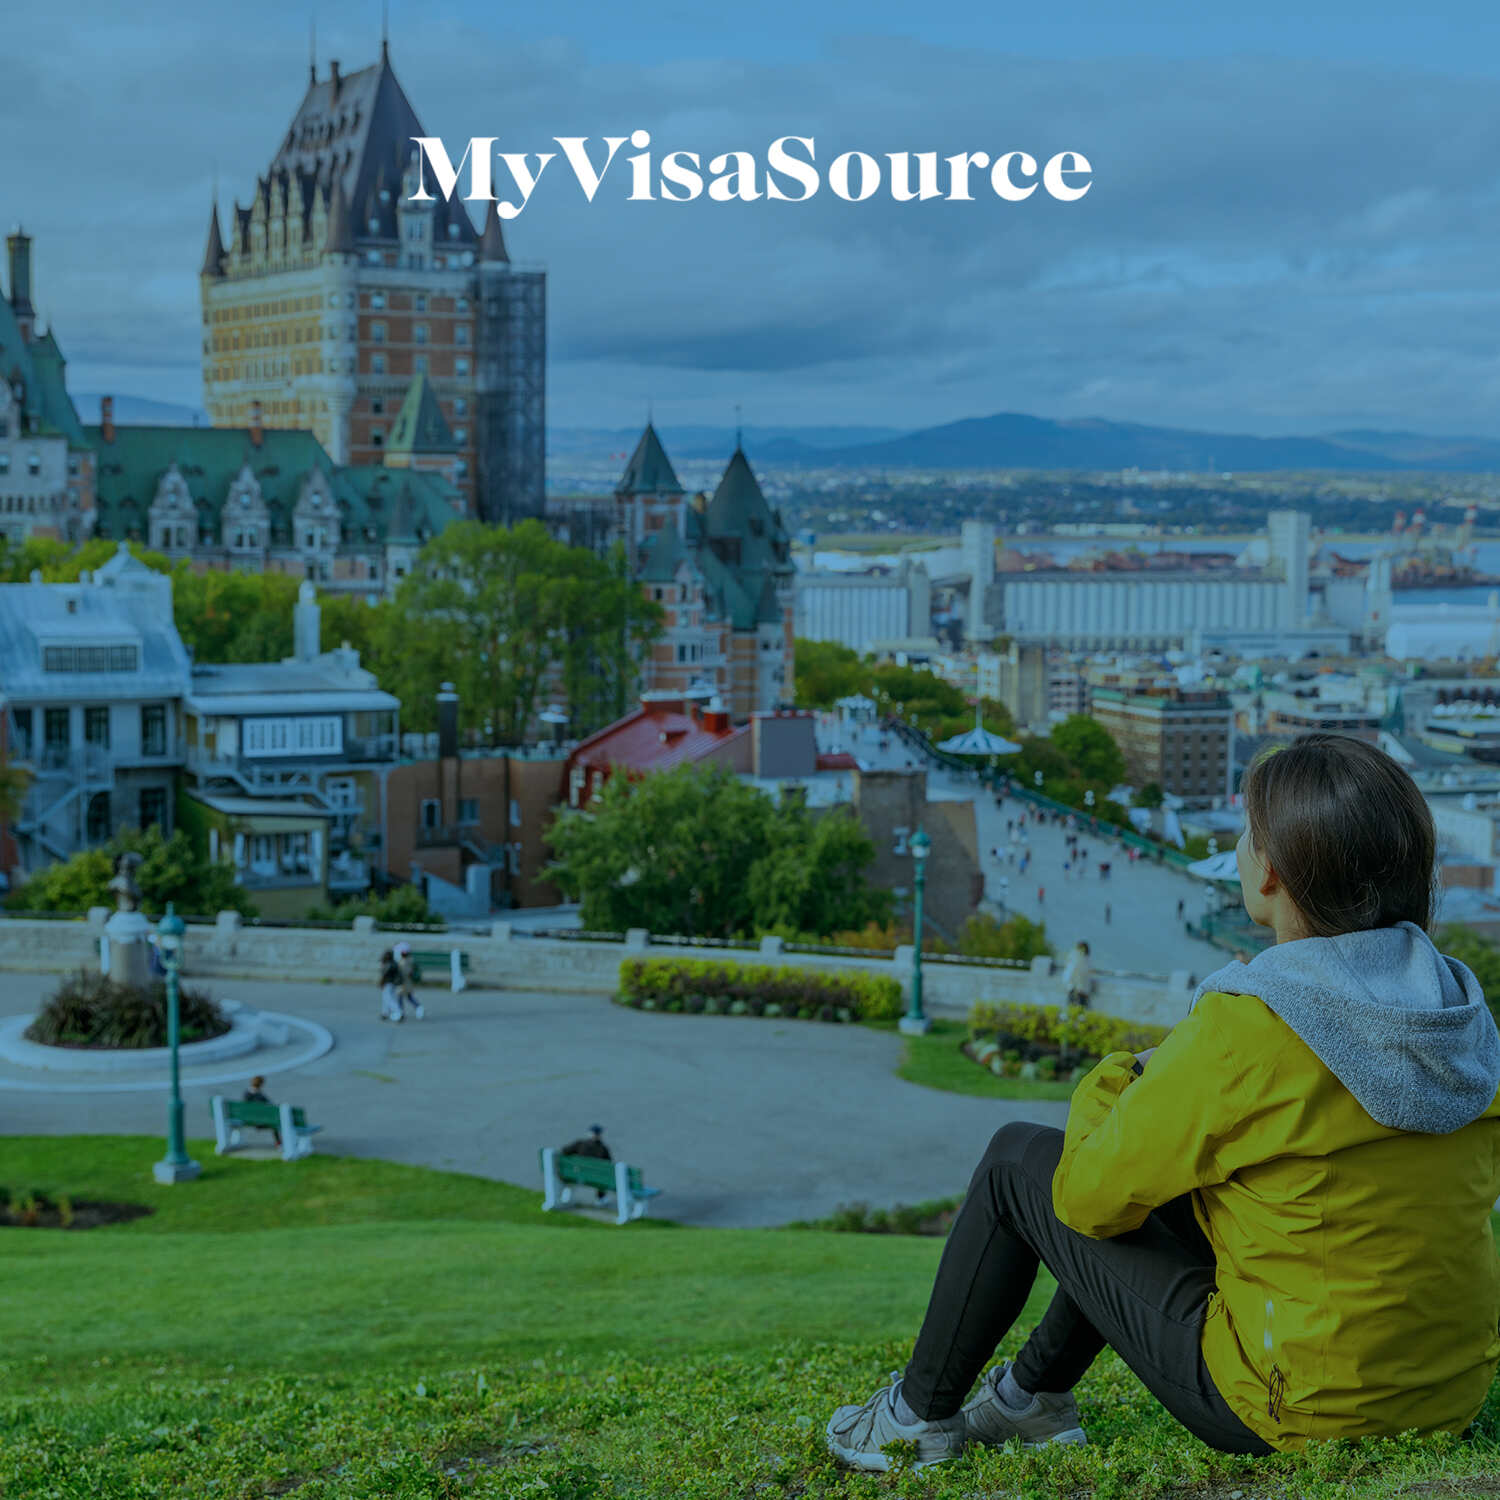 wide picture of an old castle in quebec city my visa source